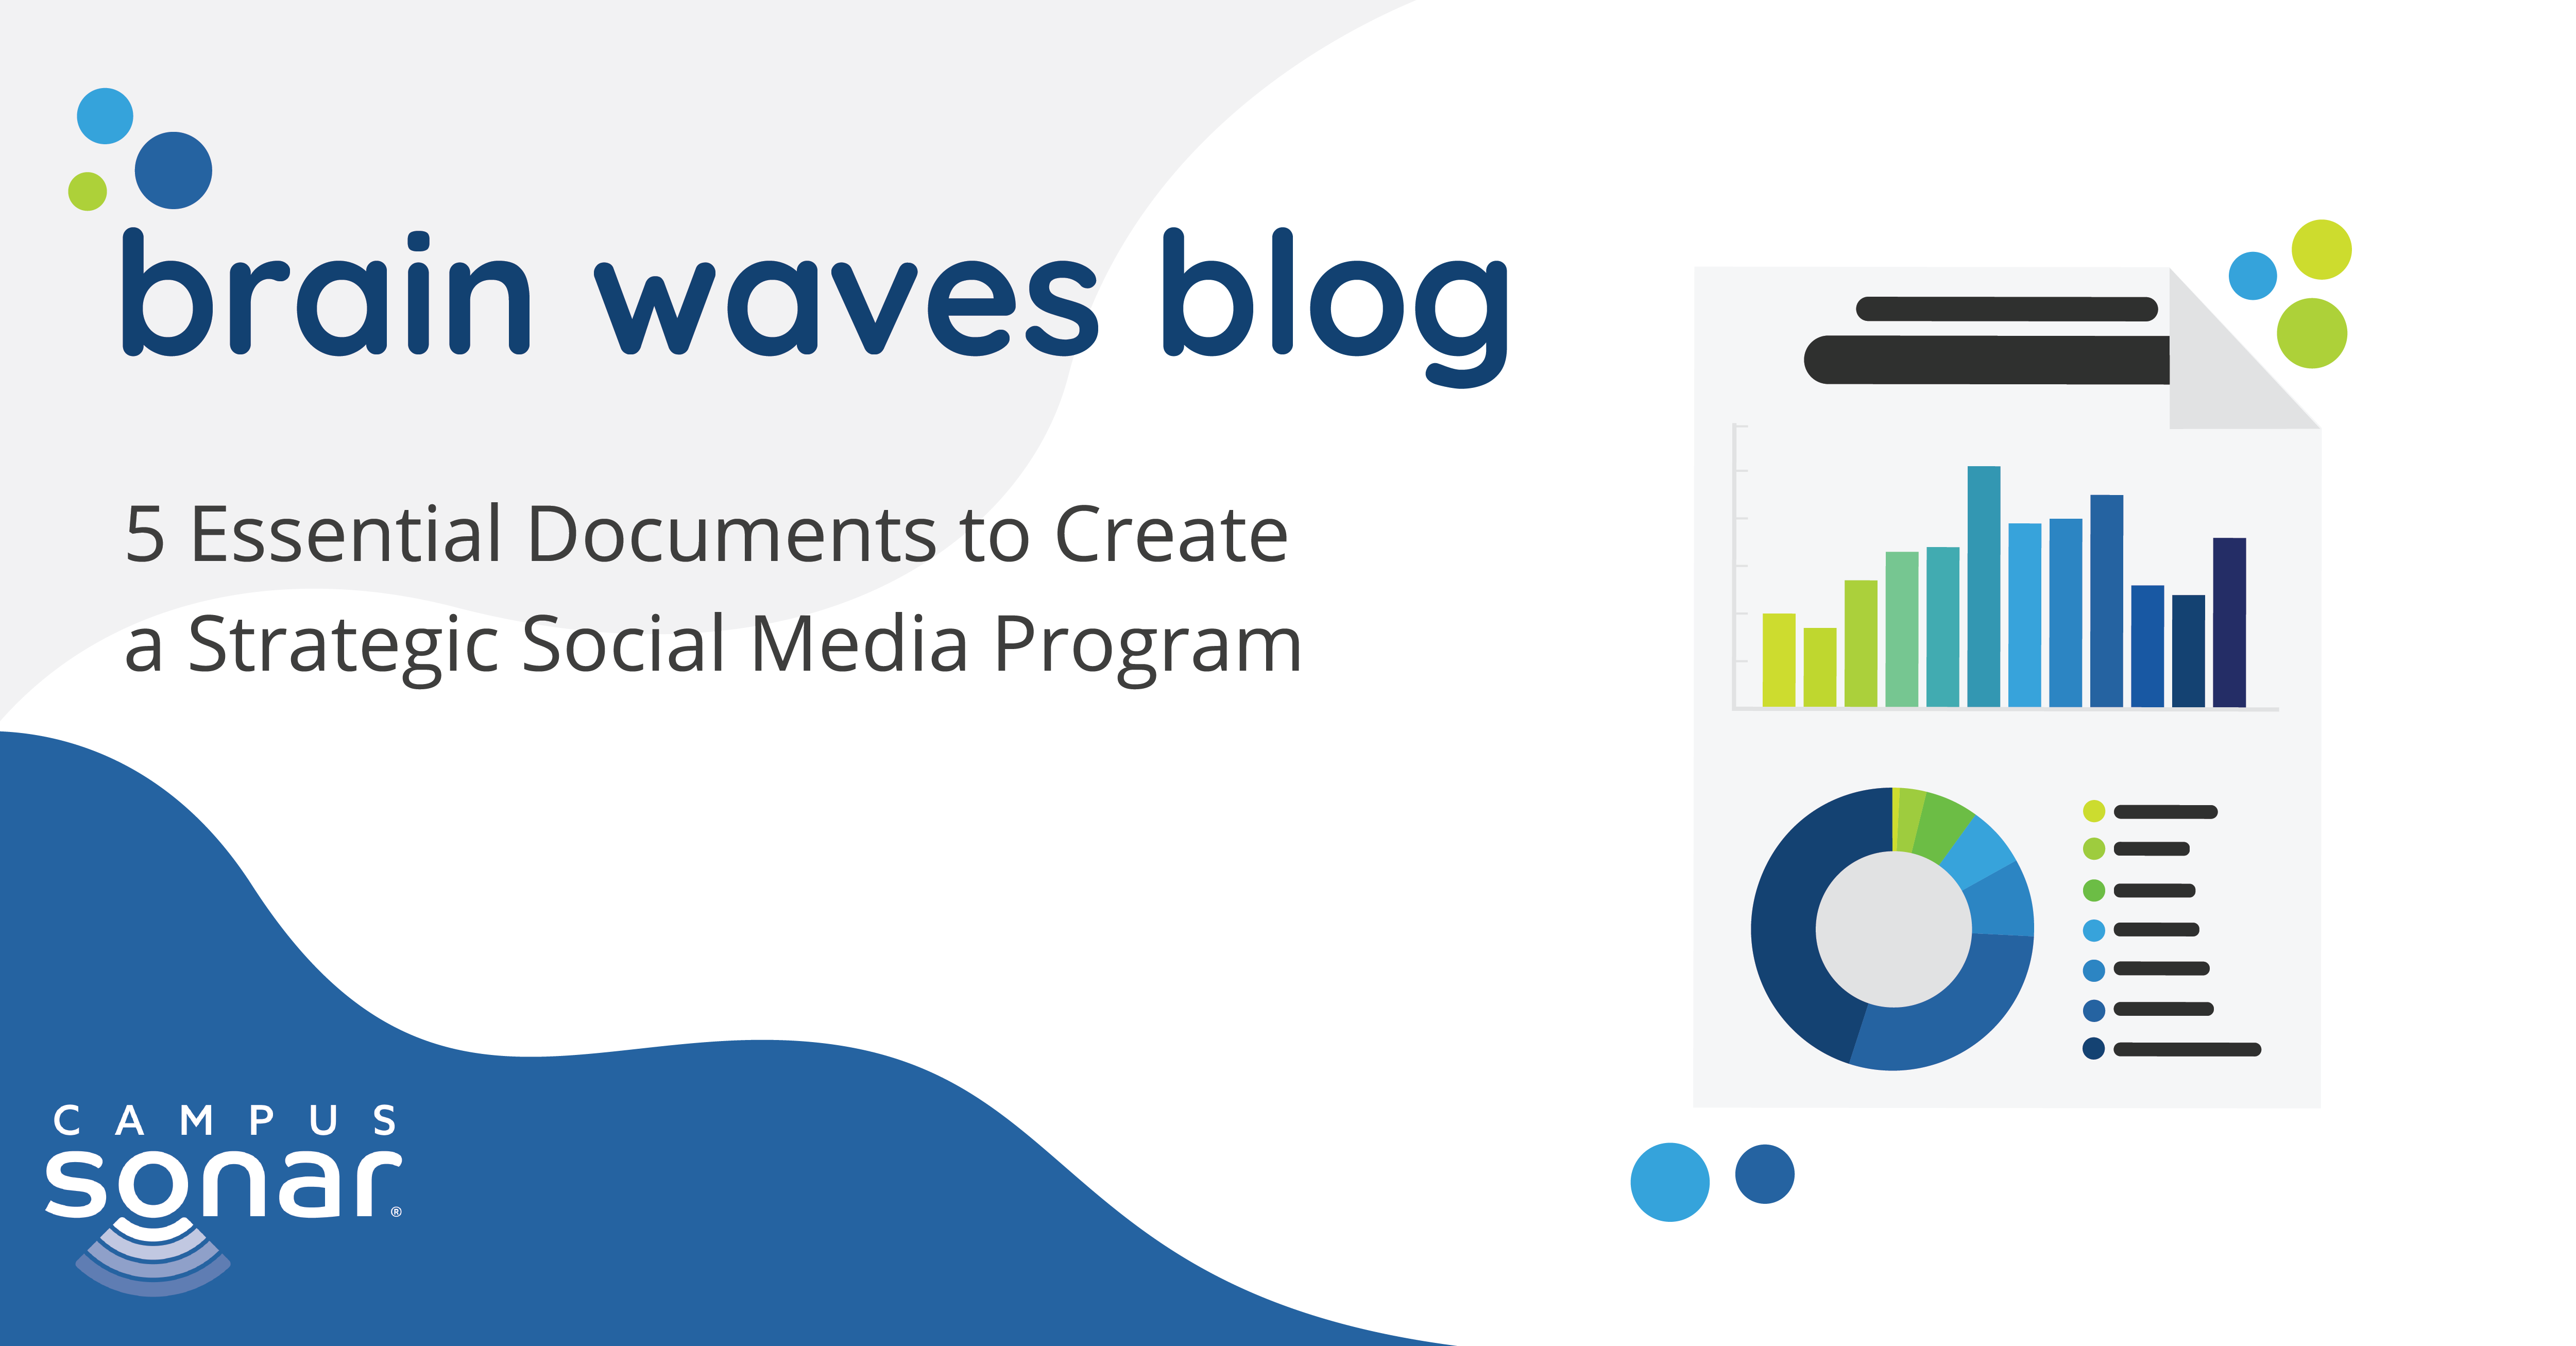 Brain Waves blog post image for 5 Essential Documents to Create a Strategic Social Media Program